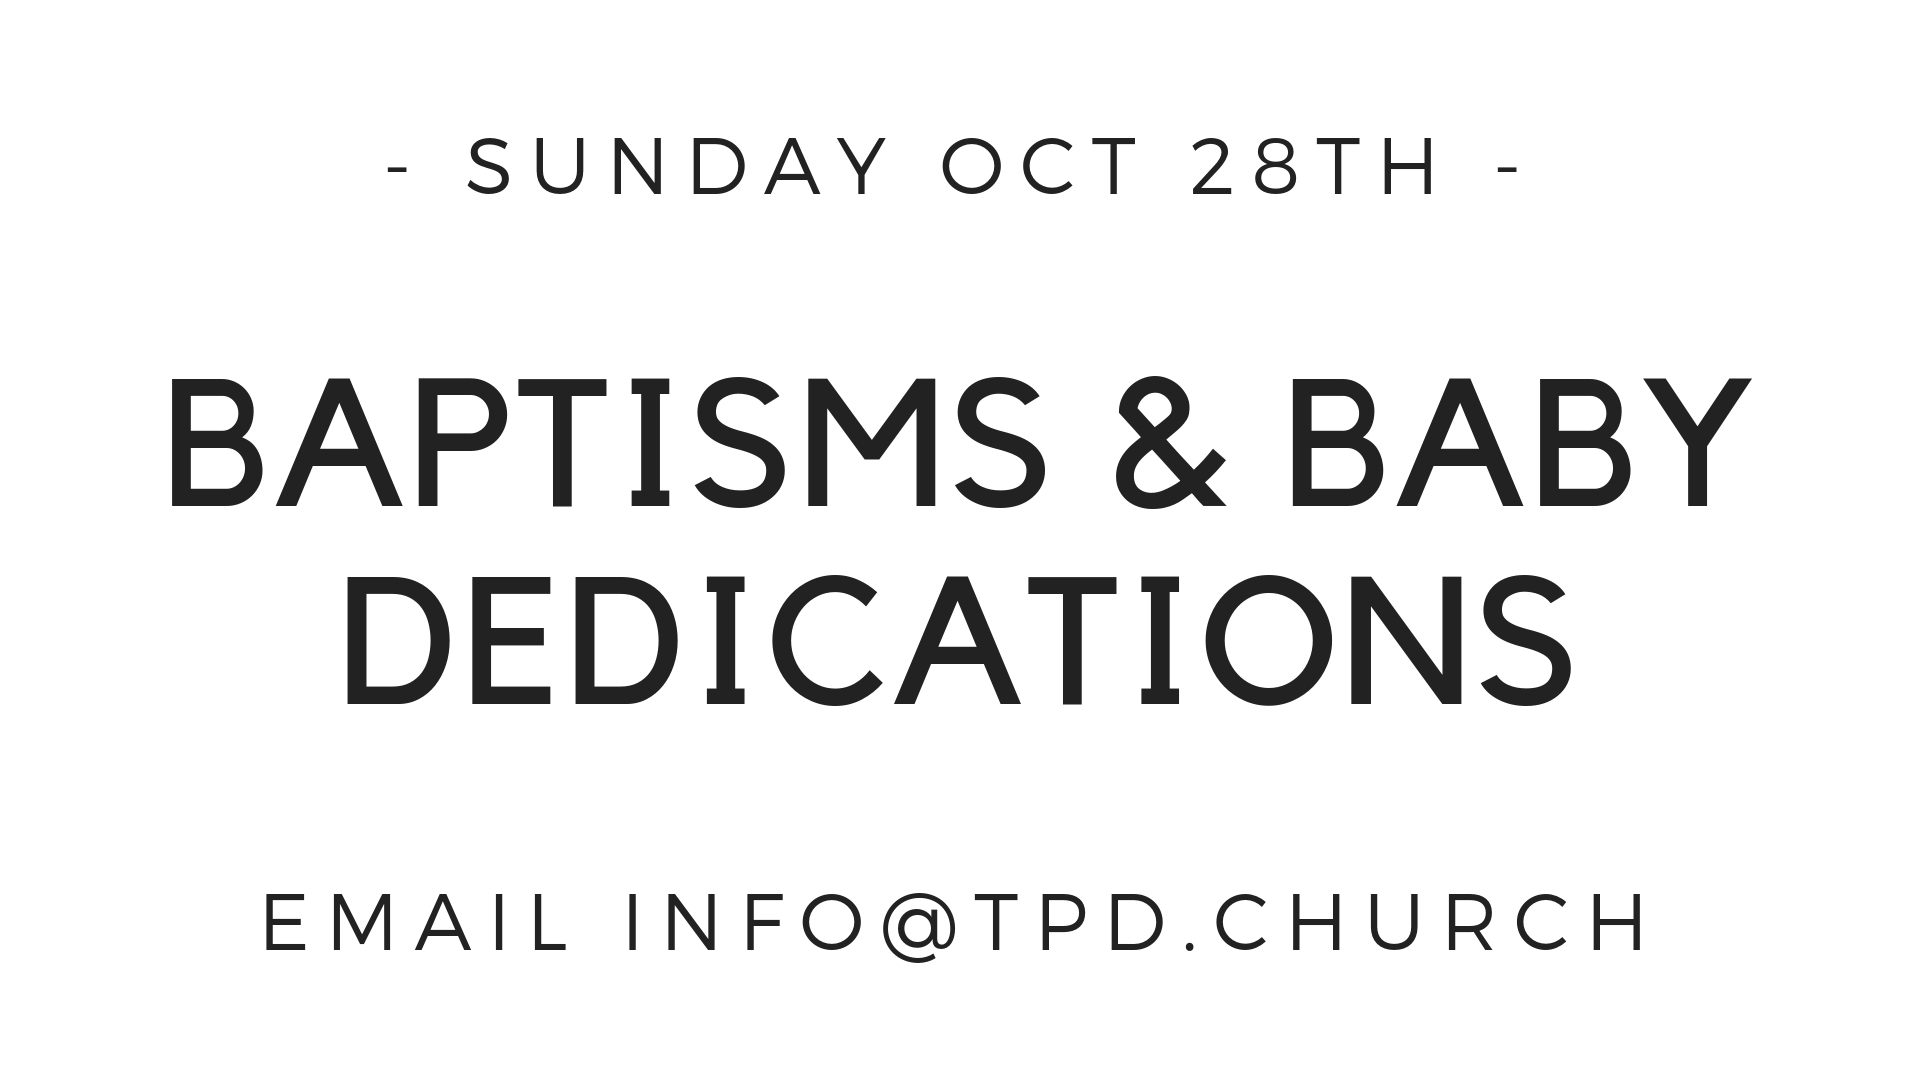 Also on Oct. 28, we'll have the baptismal set up for any parents who may want to baptize their infants or for any person who is a Christian but has not yet been baptized. If you'd like to talk more about that, please email mark@tpd.church.